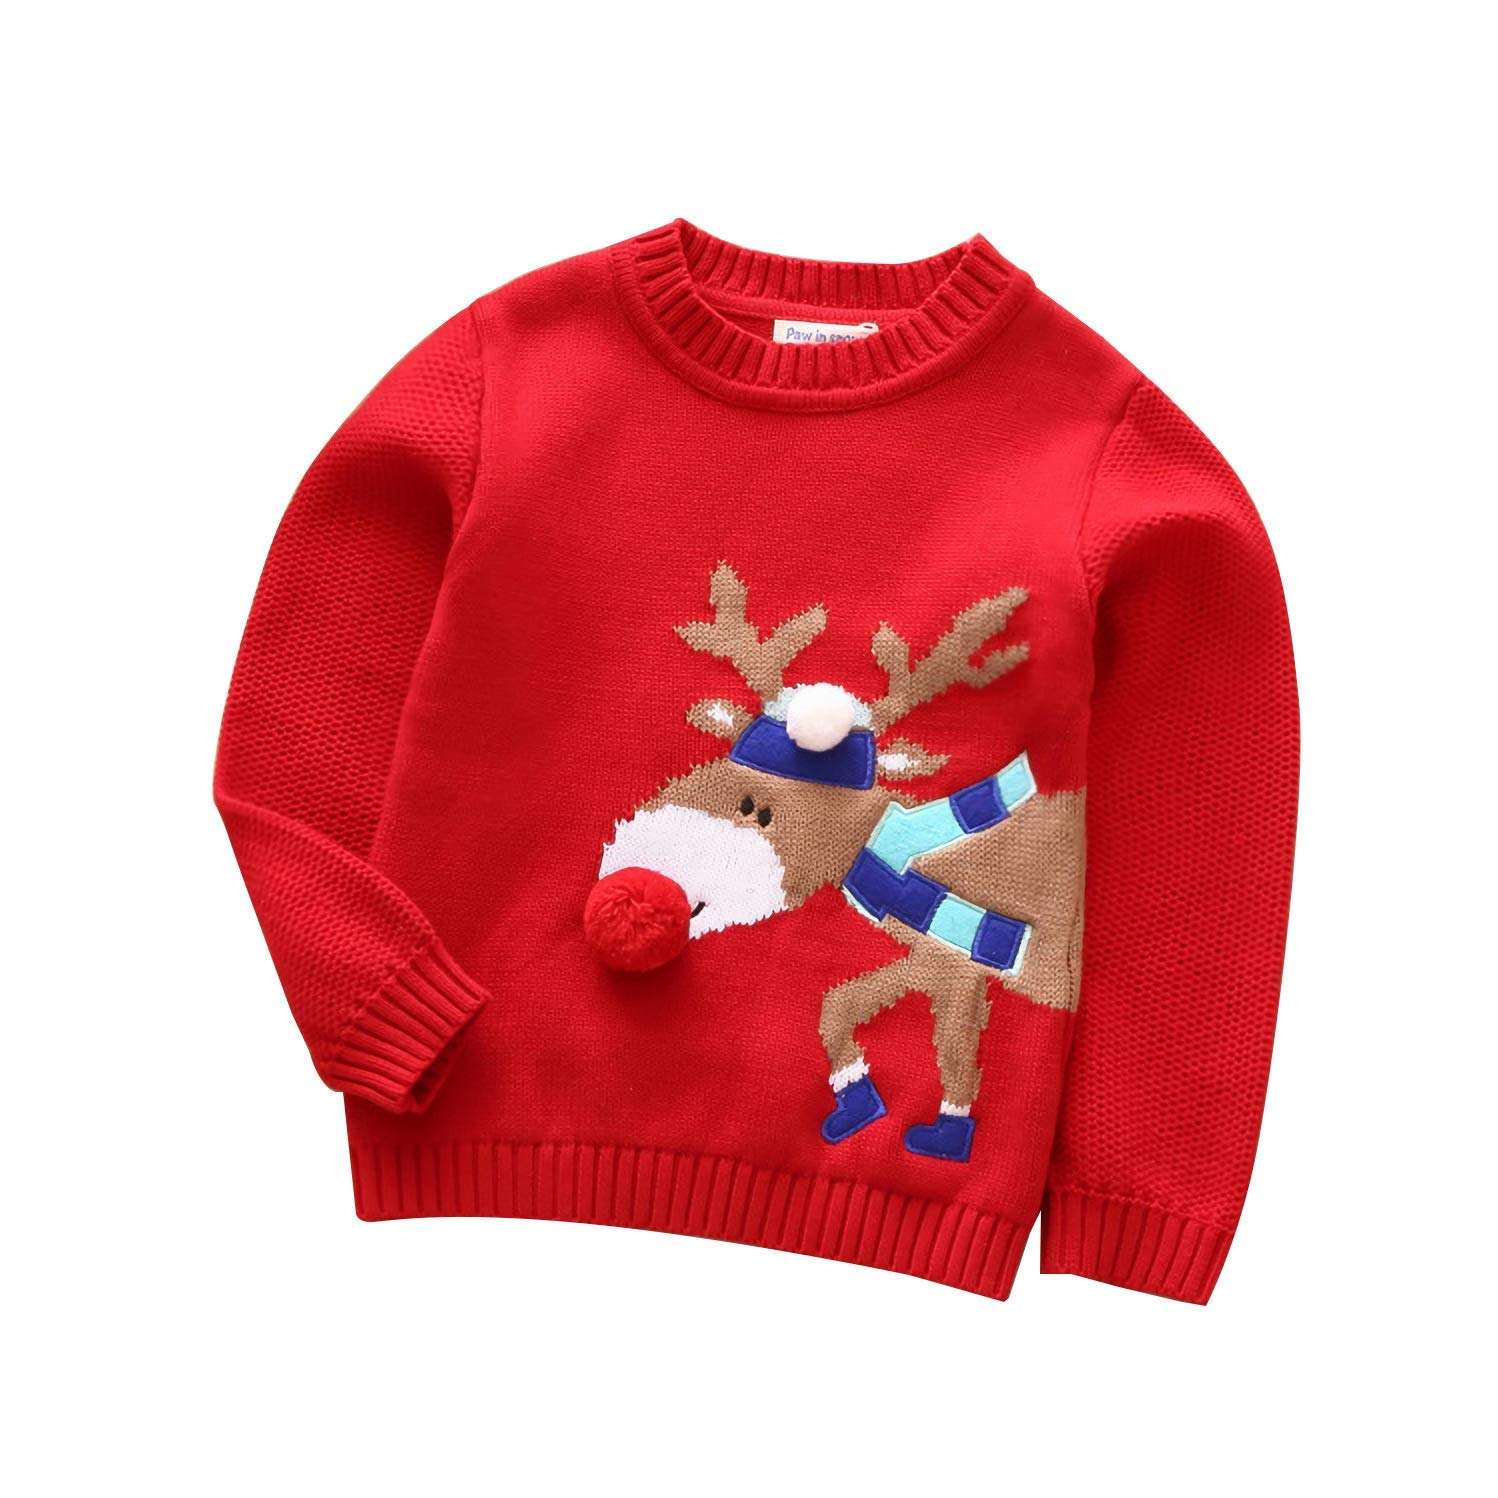 Velius Girl's Long Sleeve Knit Elk Christmas Sweater Tops 01